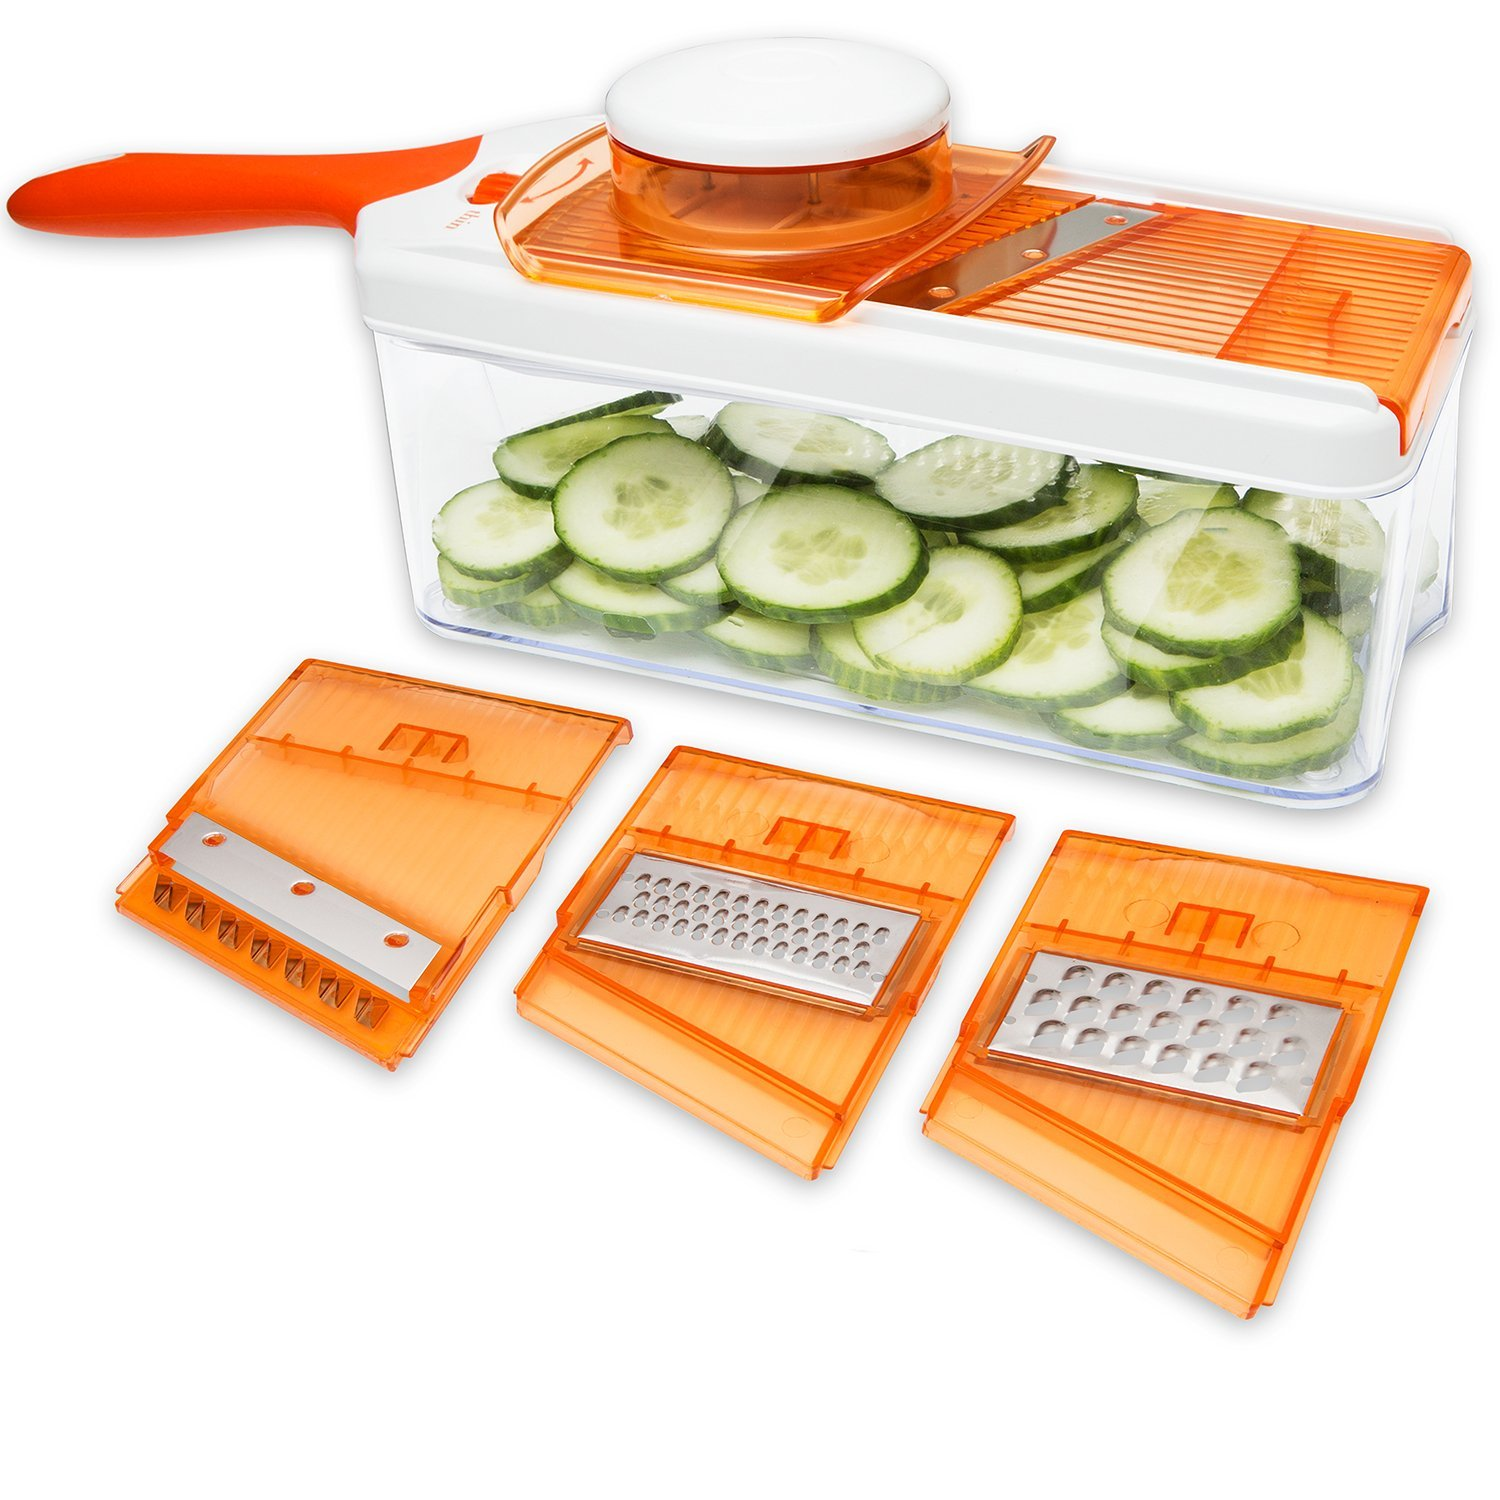 Mandoline Slicer; The Secret Weapon In Your Kitchen